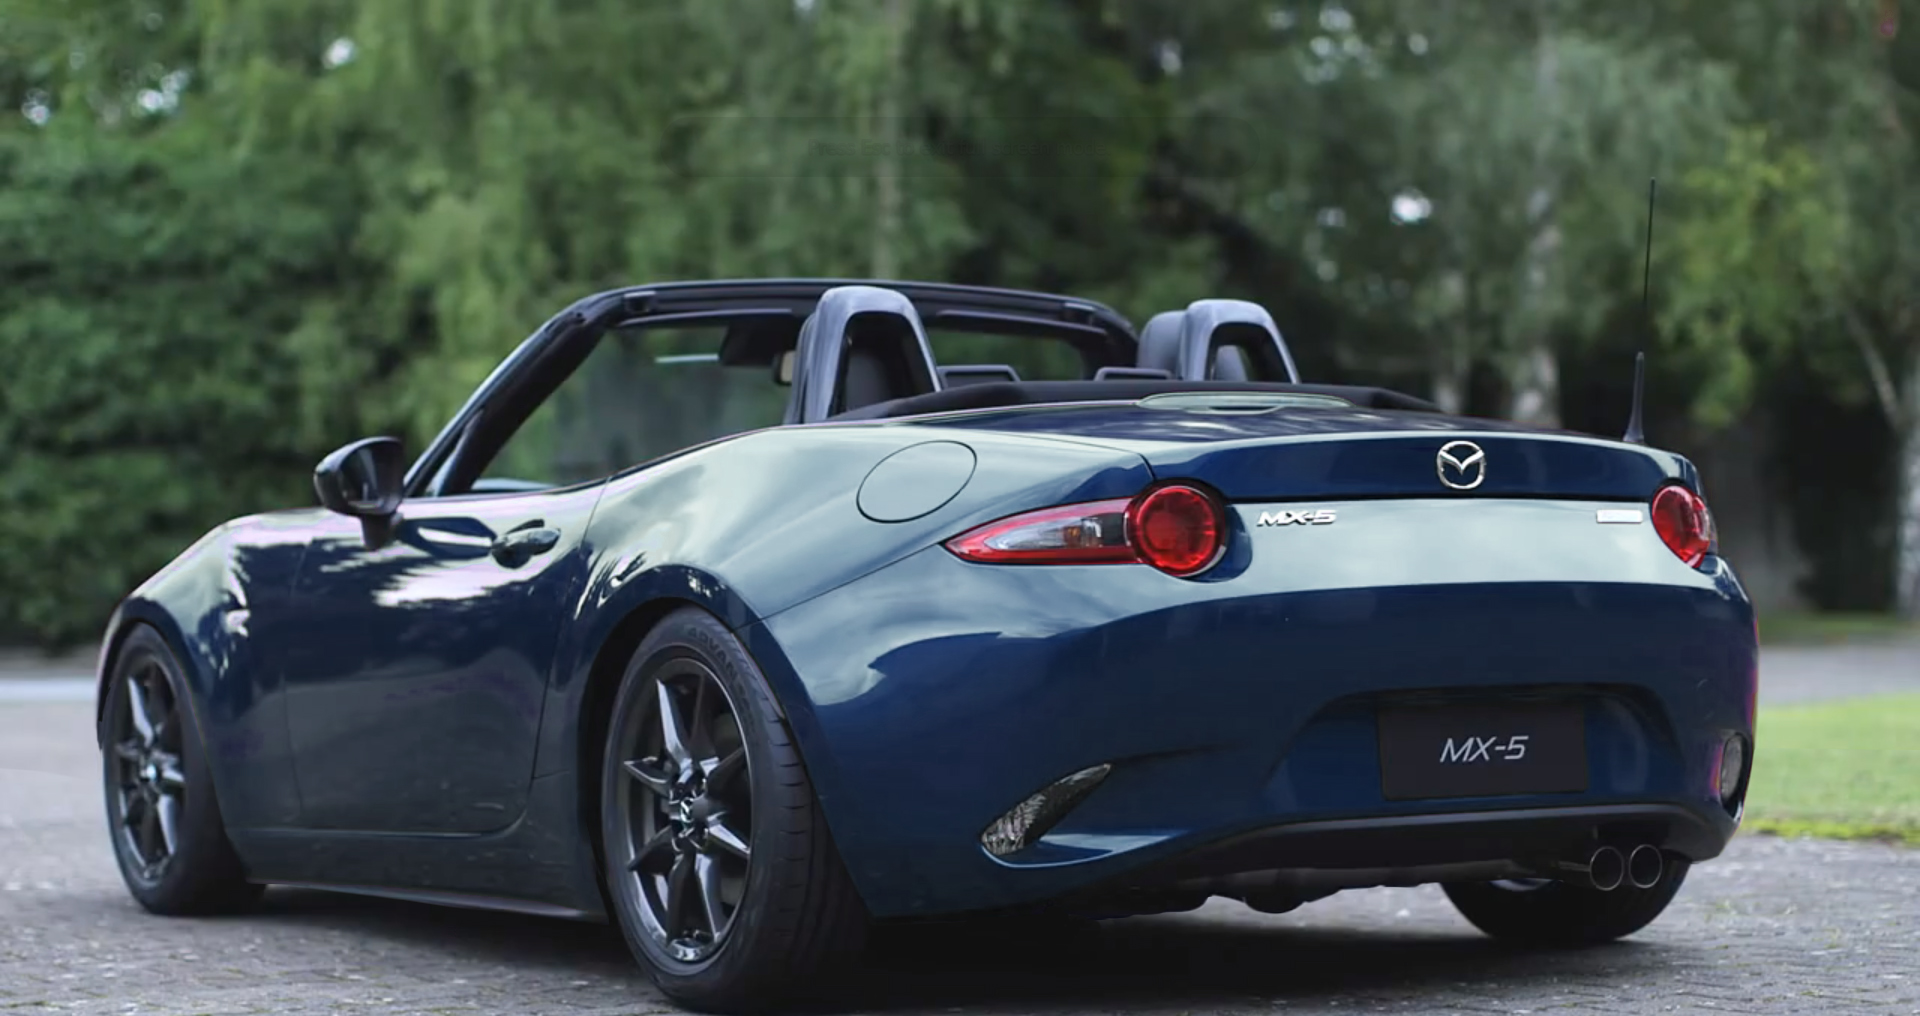 Just re-coloured and dropped the new MX5! What do you think?